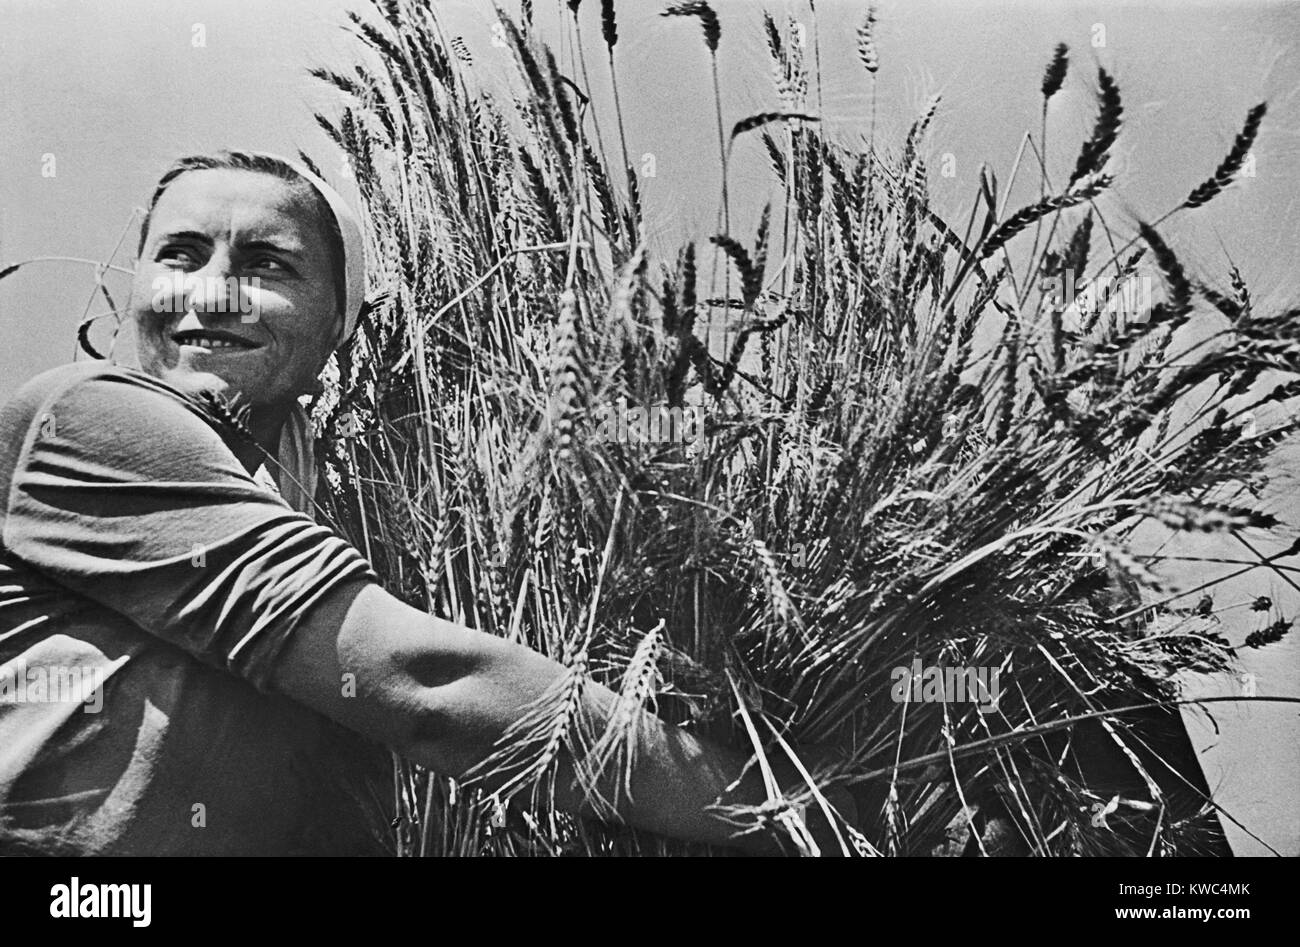 Woman collective farmer with newly harvested wheat. Ca. 1935-40. Near Krasnodar, USSR, (BSLOC_2015_2_255) - Stock Image